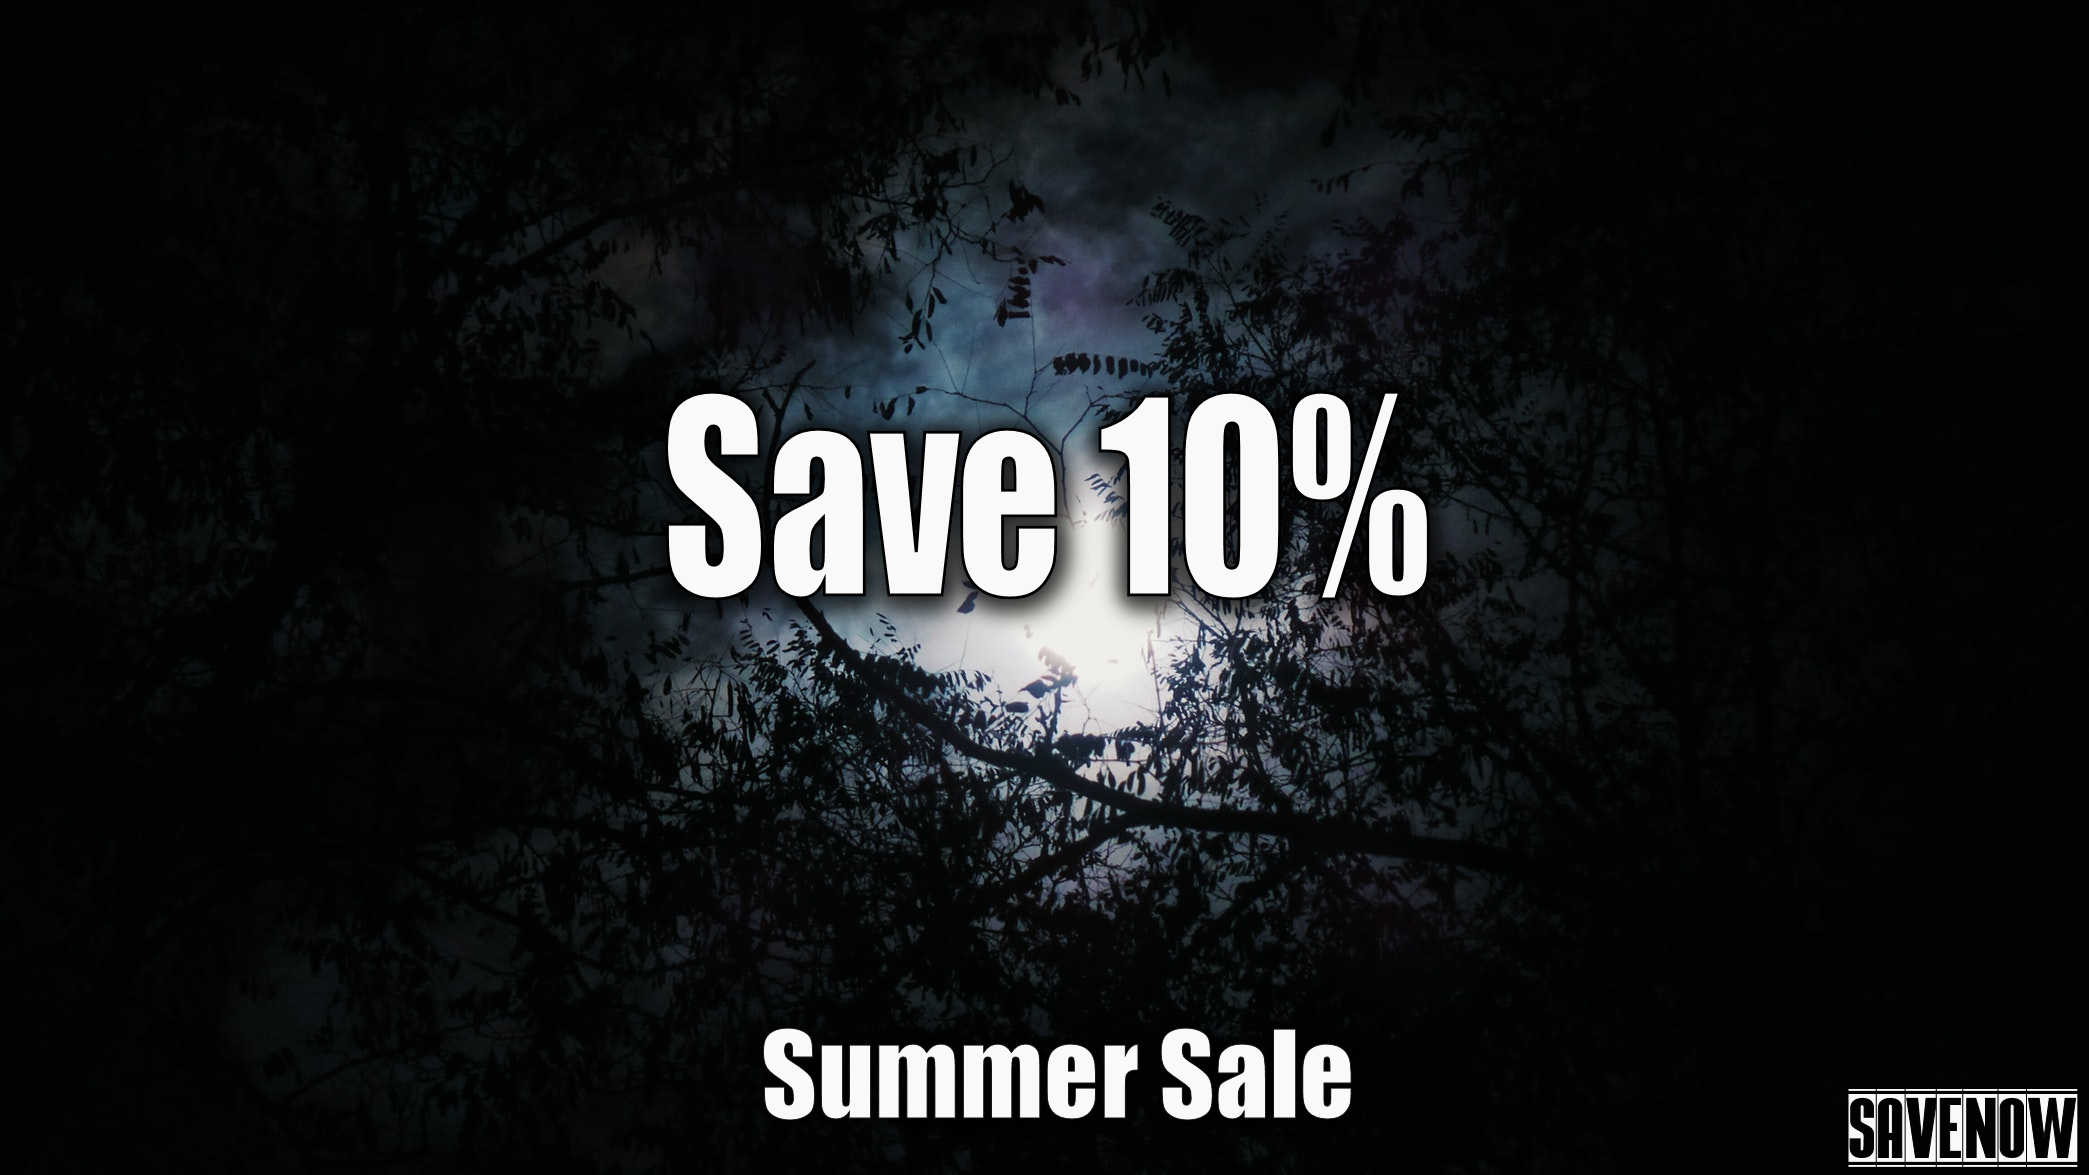 Save 10% on WoW Wordpress themes all summer long